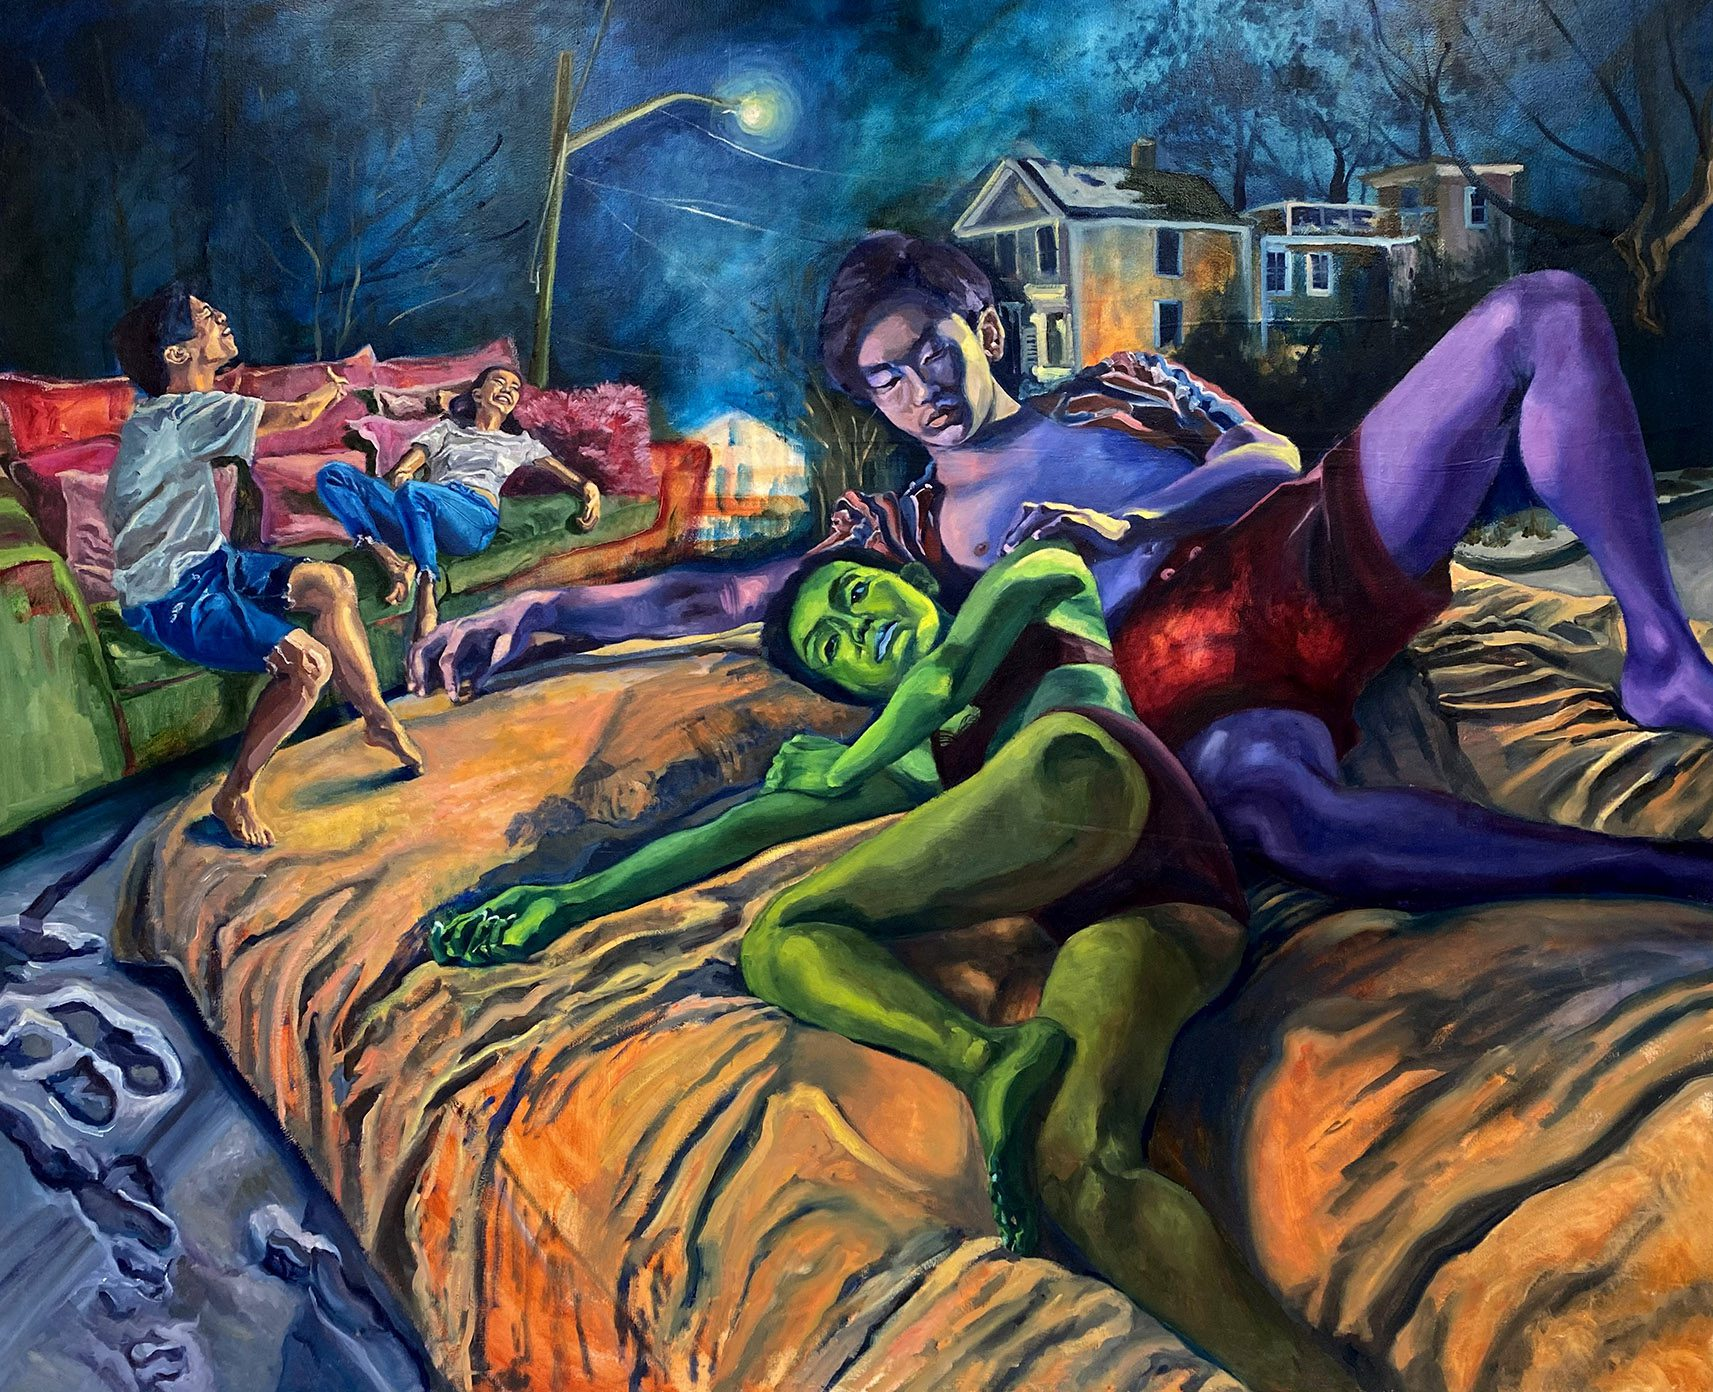 Kitty Ng, Confessions from a 20 year old college female, 2021, Oil on canvas, 180 x 220 cm, 71 x 86.6 in, © The Artist